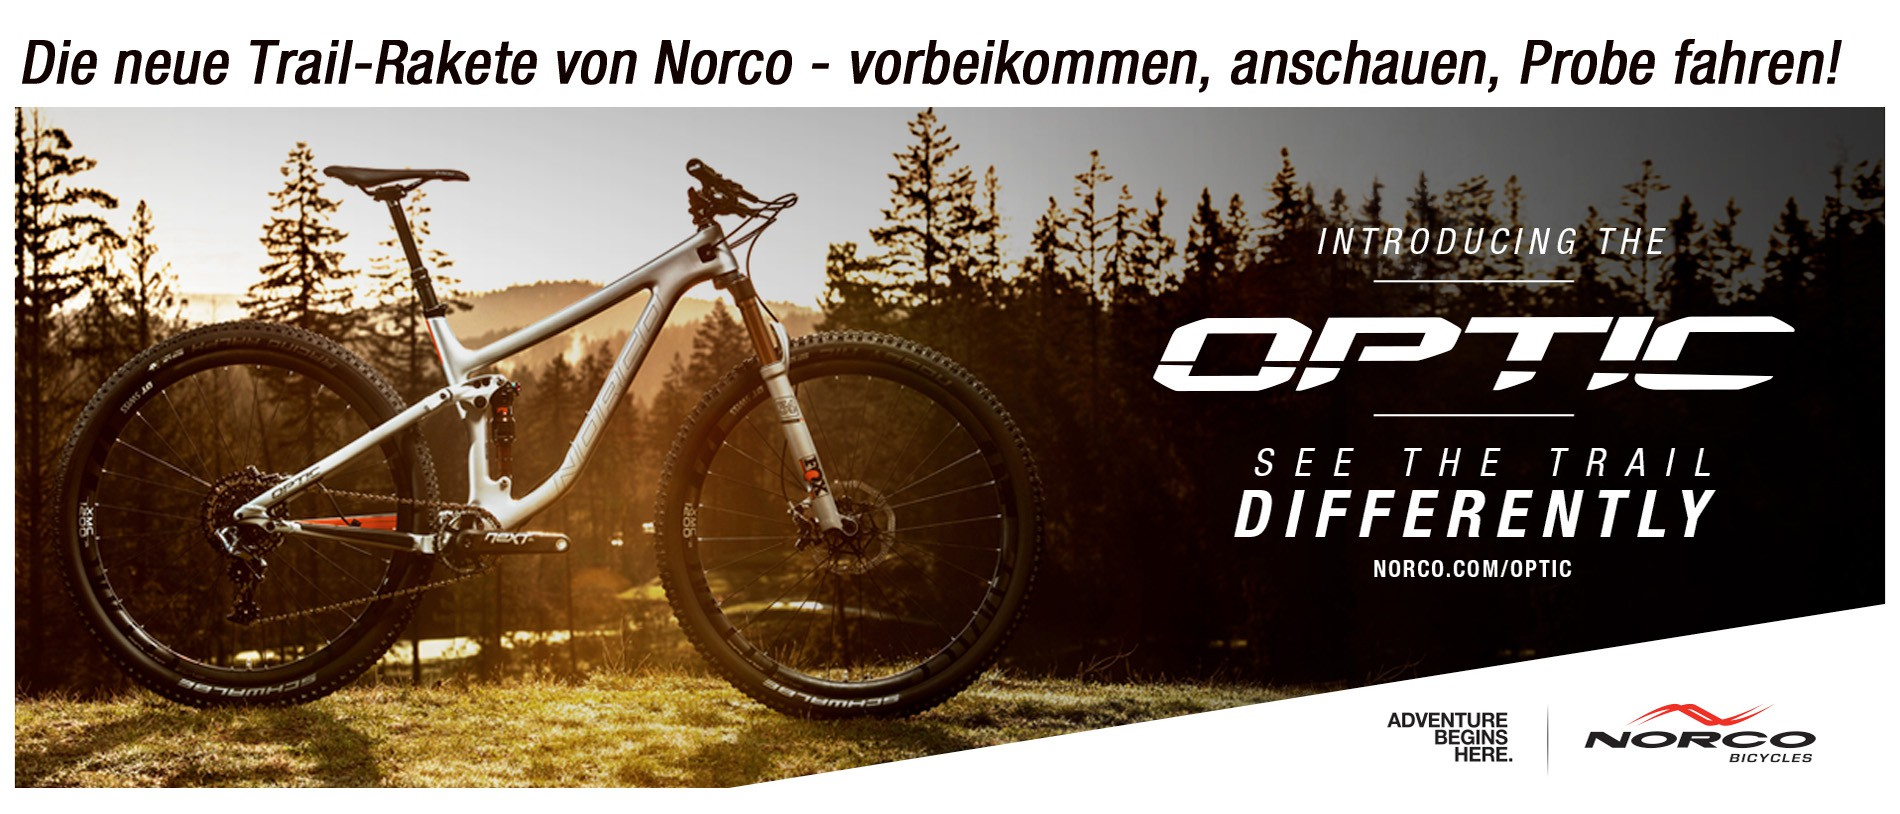 Norco Optic - see the trail differently